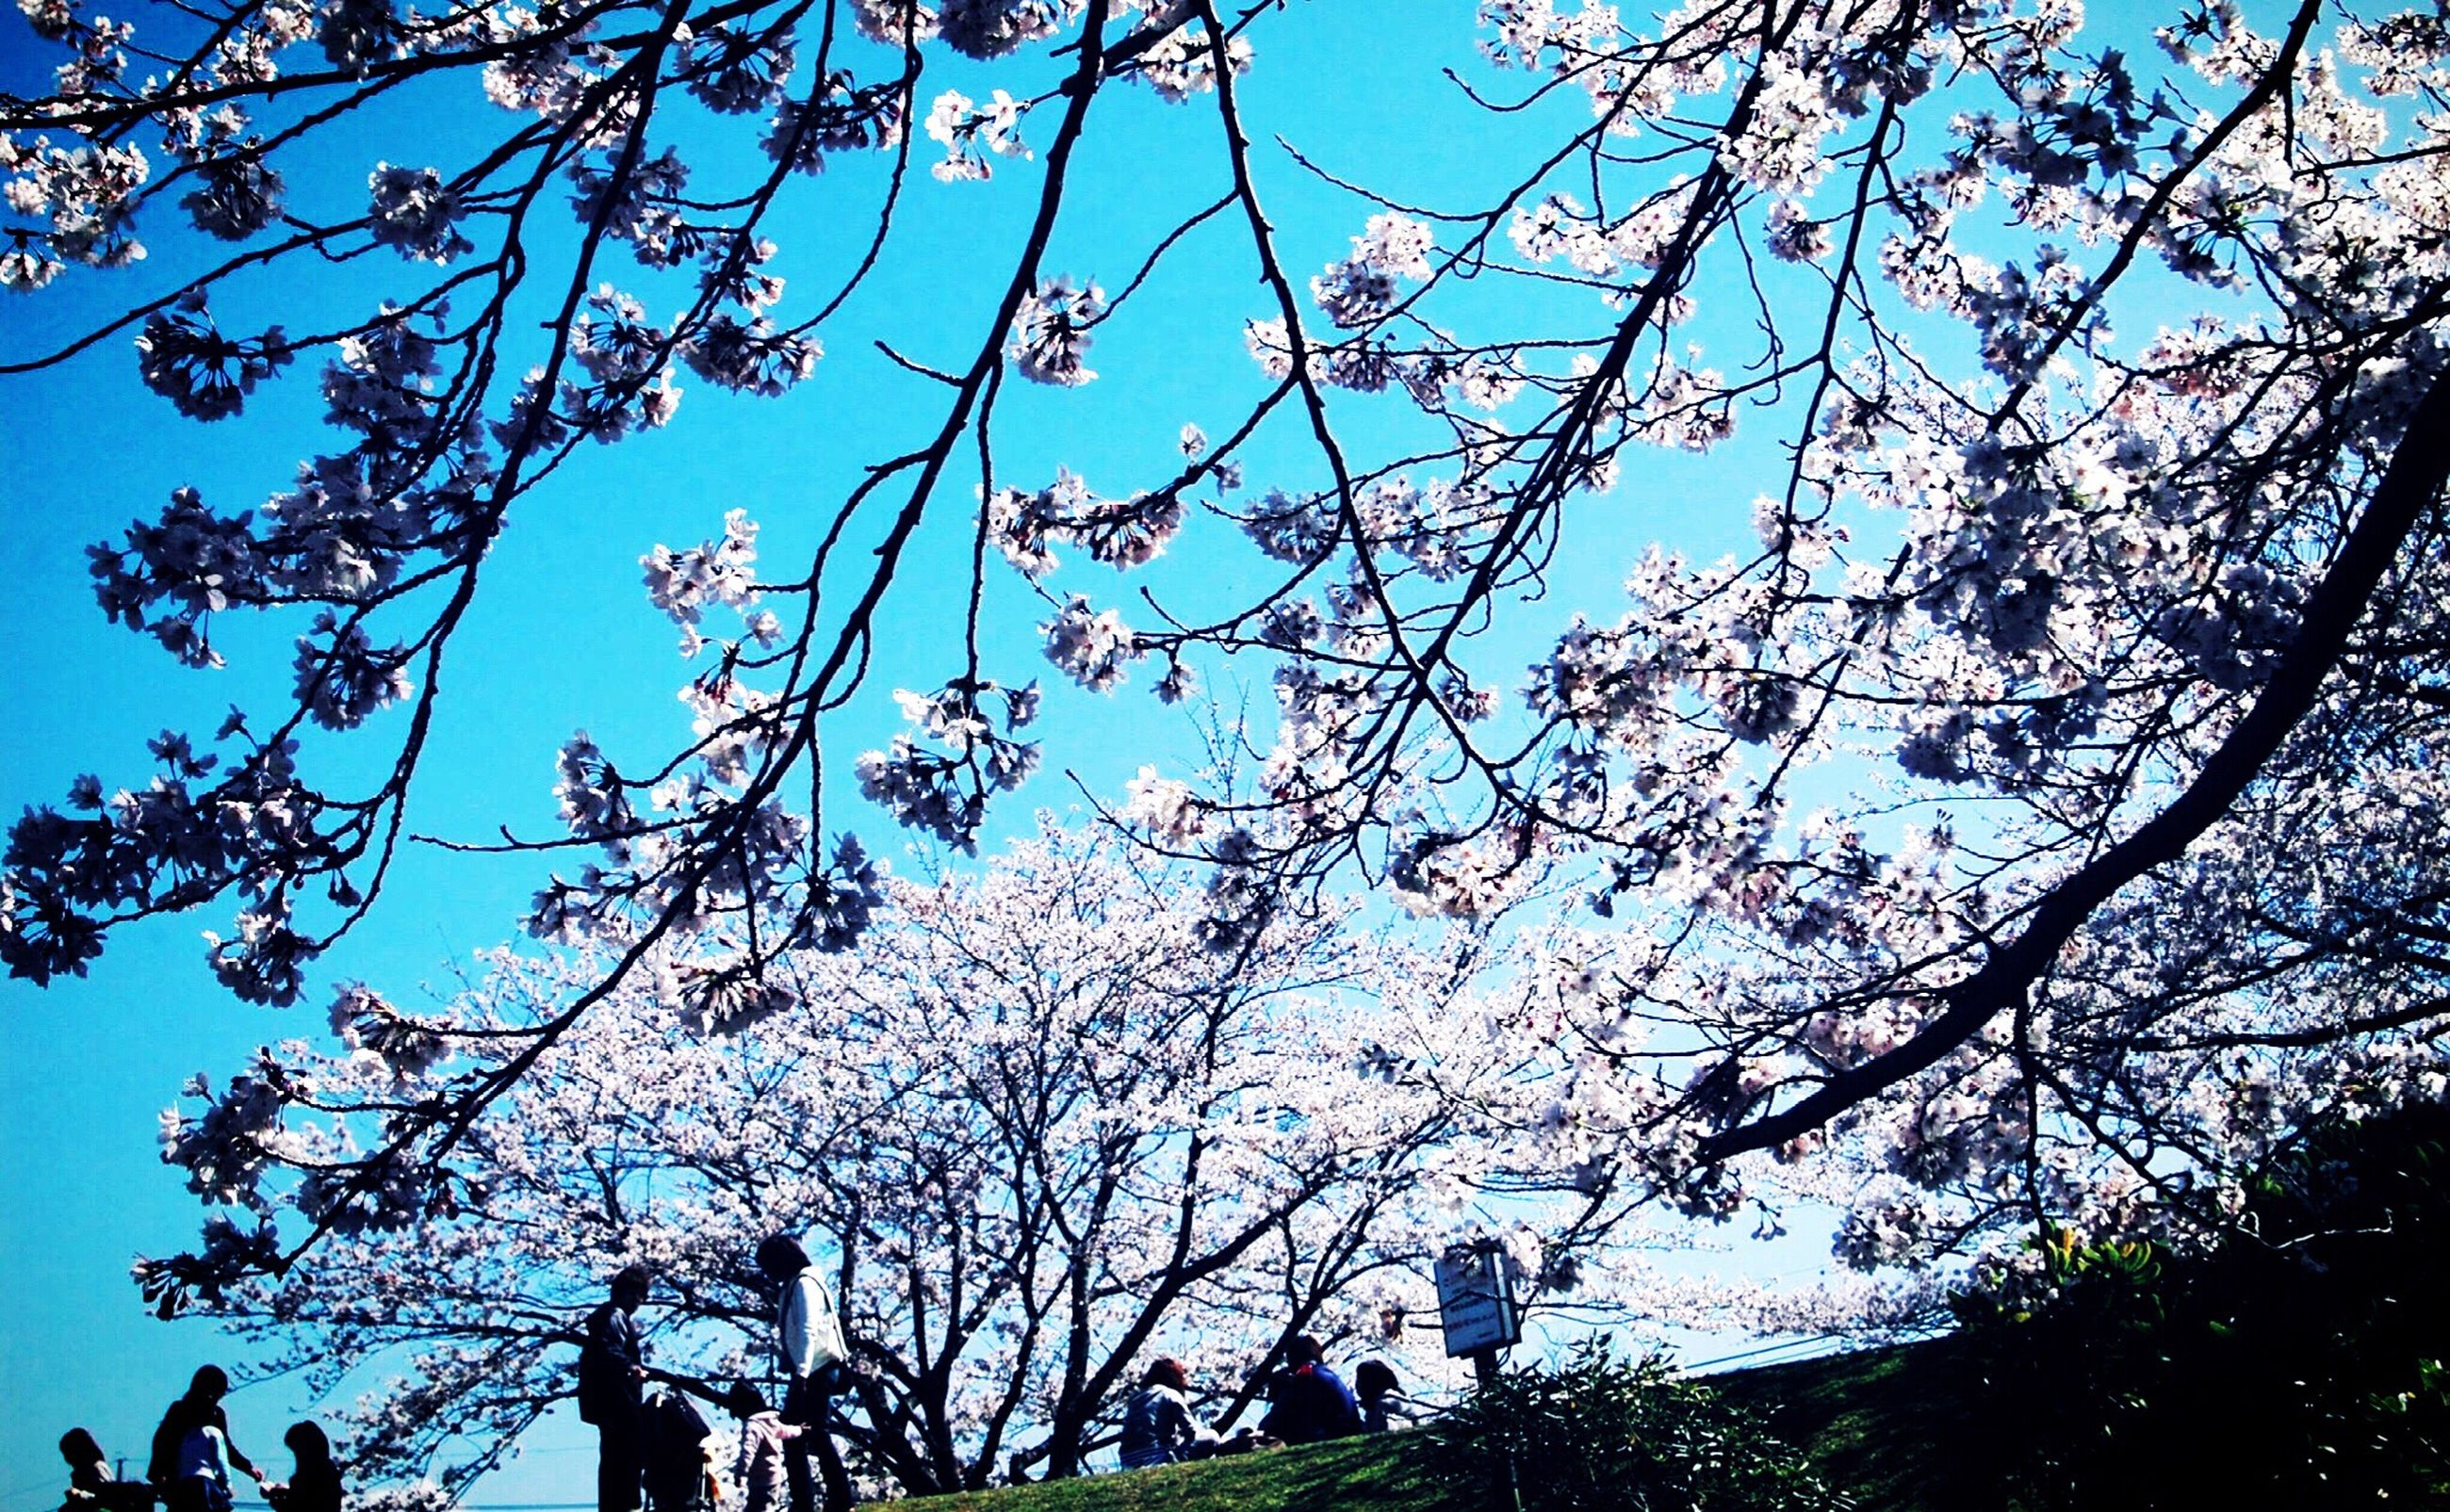 low angle view, tree, branch, growth, clear sky, flower, blue, freshness, nature, beauty in nature, sky, fragility, sunlight, day, outdoors, blossom, no people, blooming, leaf, twig